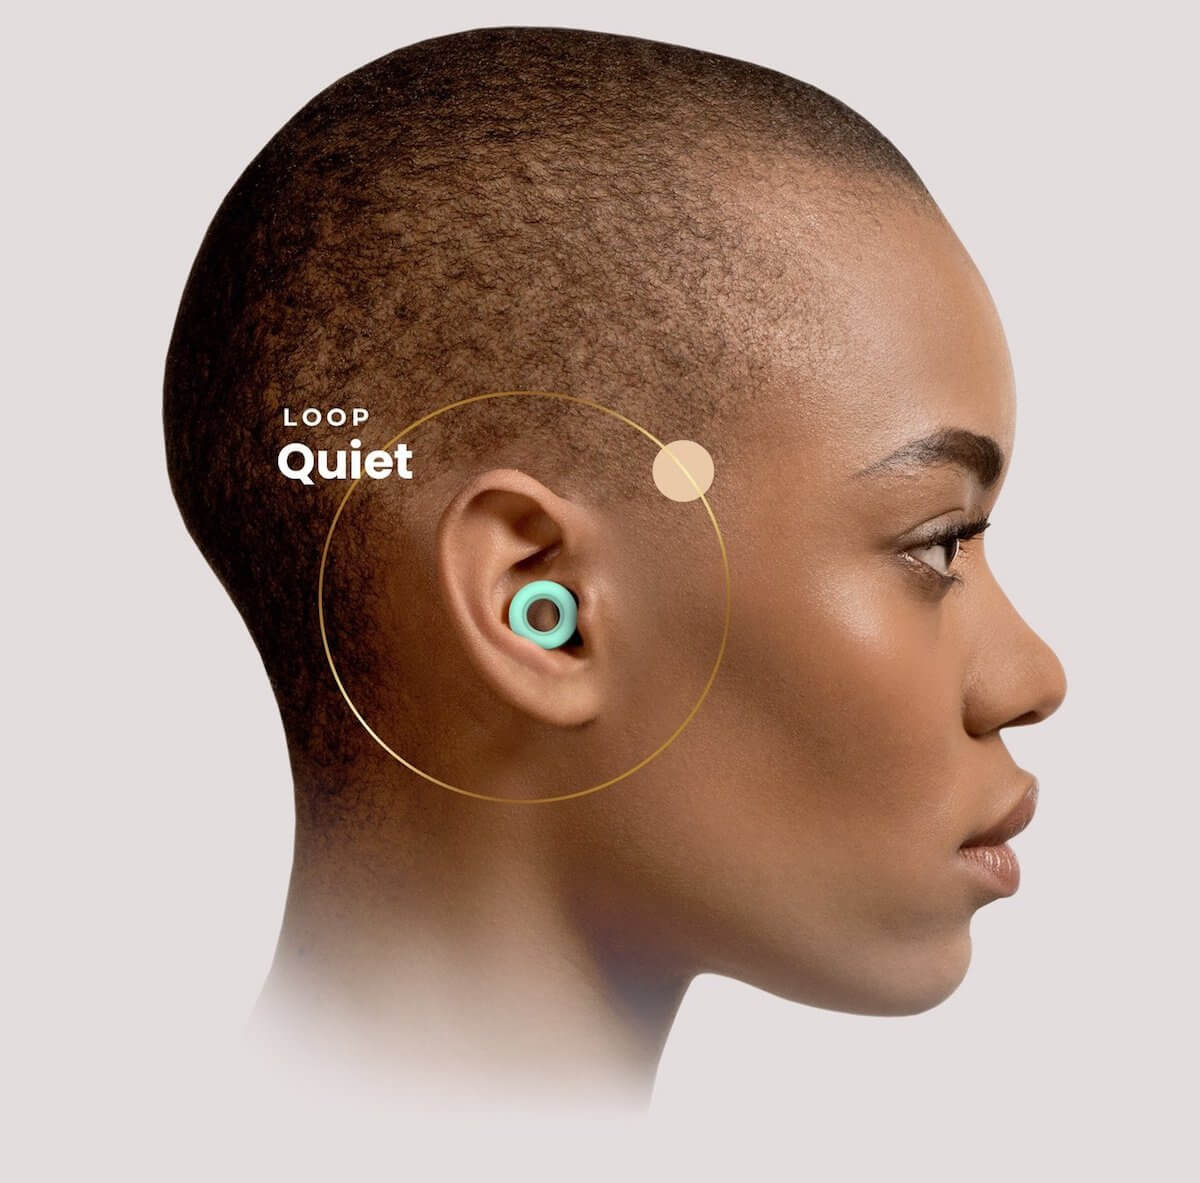 Loop Quiet Magic Mint earplugs in ear